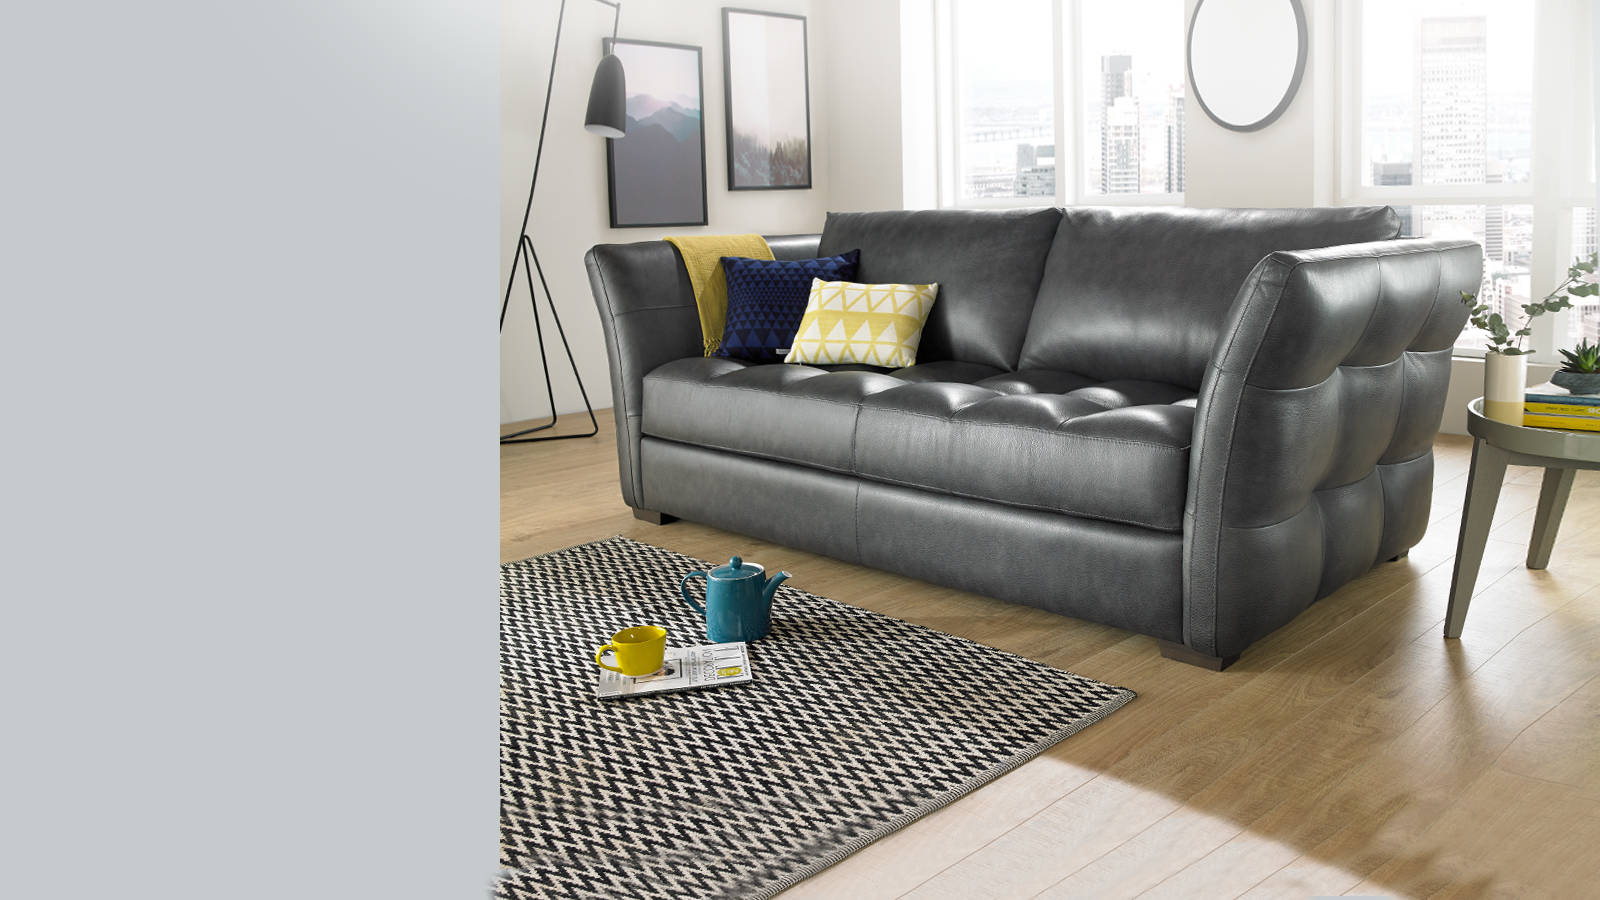 Scs Bedroom Furniture Sofology Sofas Corner Sofas Sofa Beds Chairs Always Low Prices